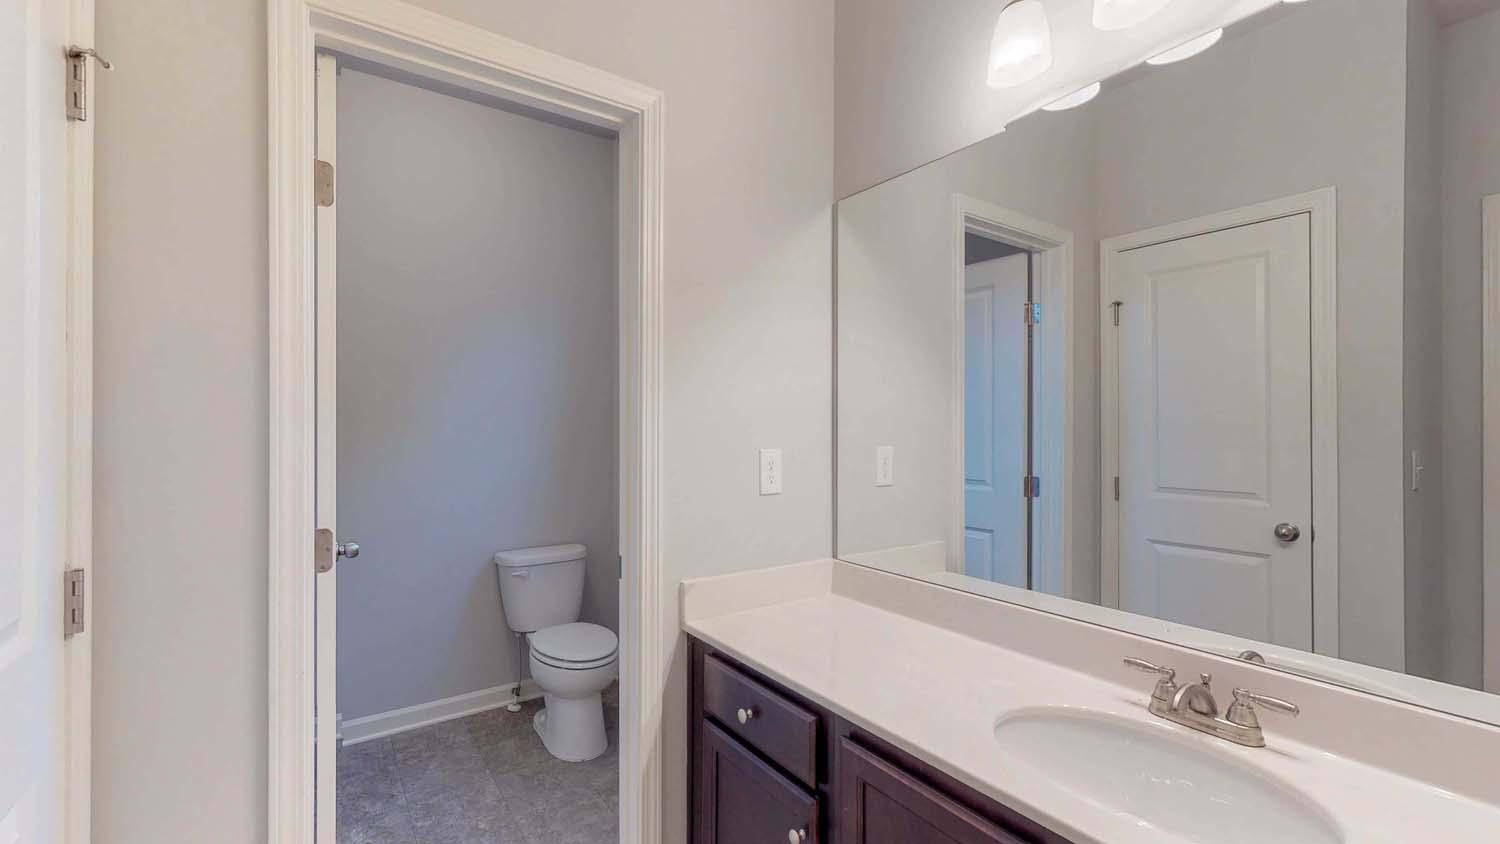 Bathroom featured in the Cottonwood By Chafin Communities in Athens, GA